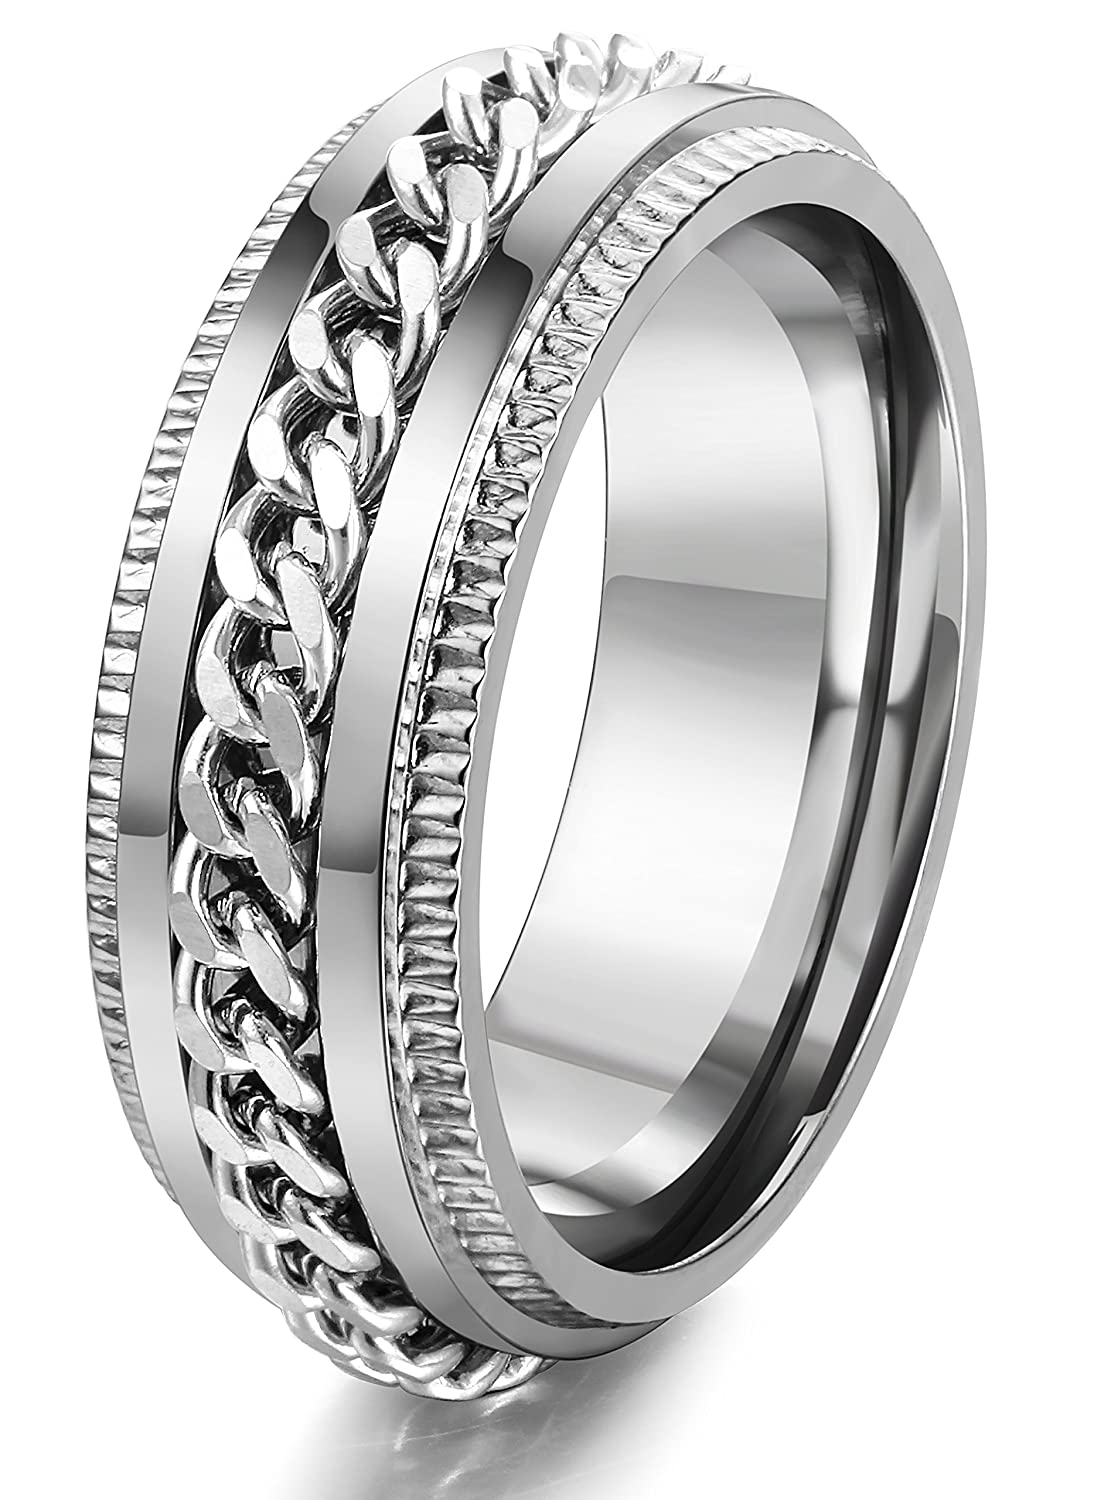 FIBO STEEL Stainless Steel 8mm Rings for Men Chain Rings Biker Grooved Edge, Size 7-14 2MR003